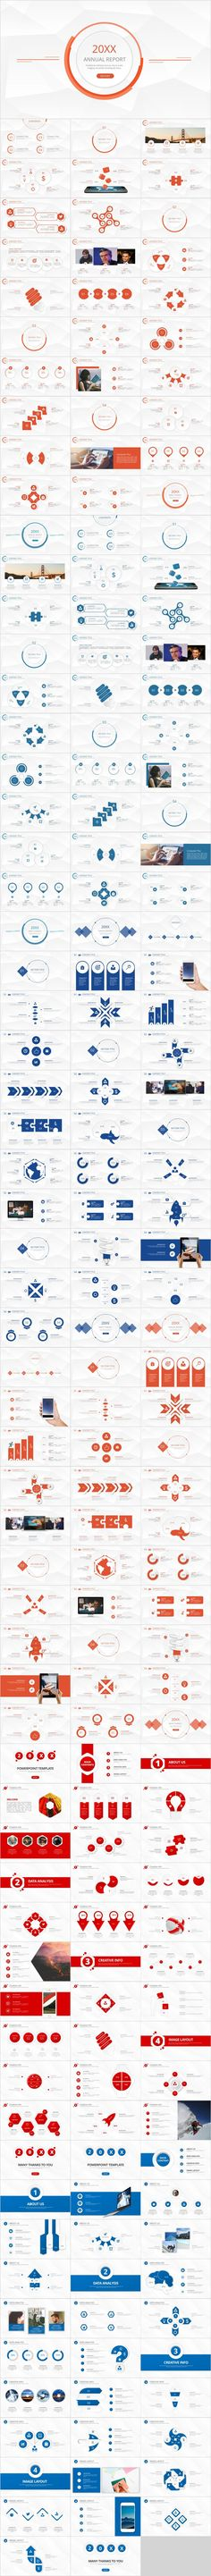 6 in 1 business analysis PowerPoint template Professional Powerpoint Templates, Creative Powerpoint Templates, Business Design, Creative Business, Business Company, Online Templates, Business Powerpoint Presentation, Report Design, Jobs Apps